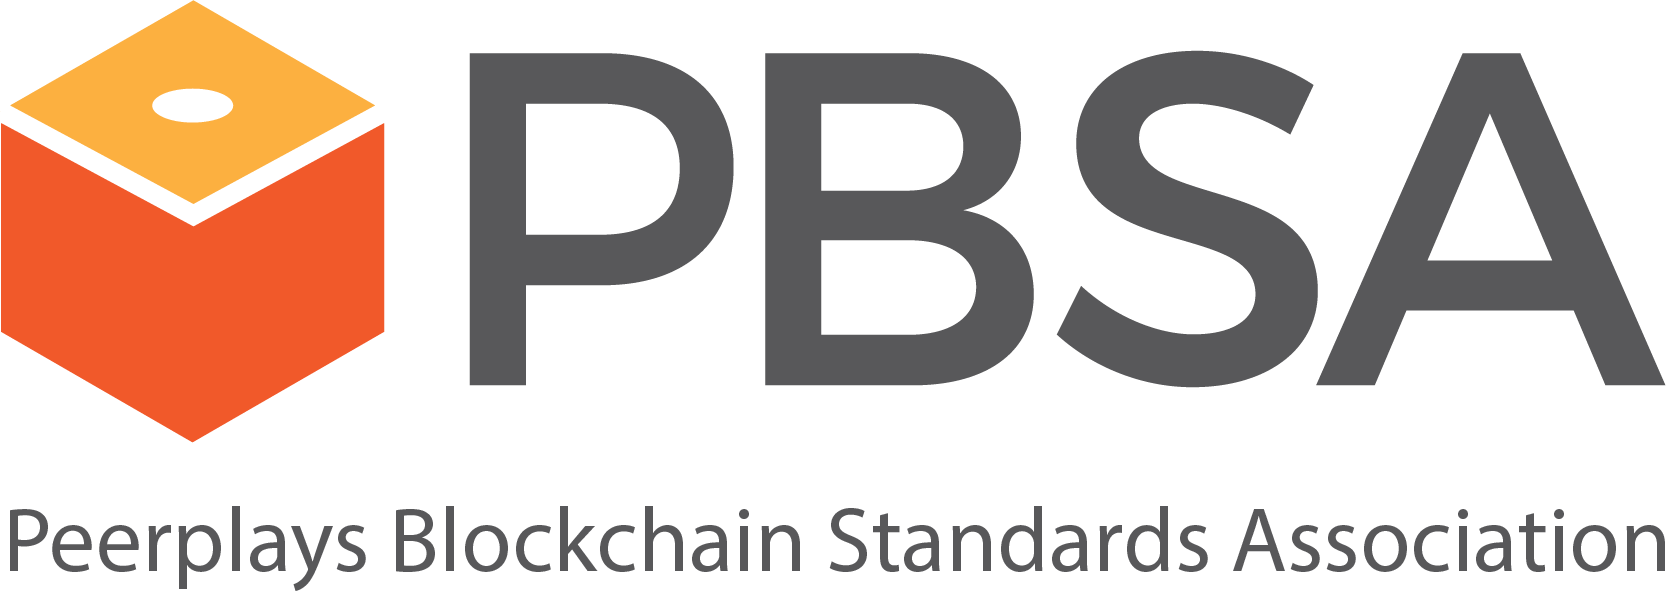 Peerplays Blockchain Standards Association